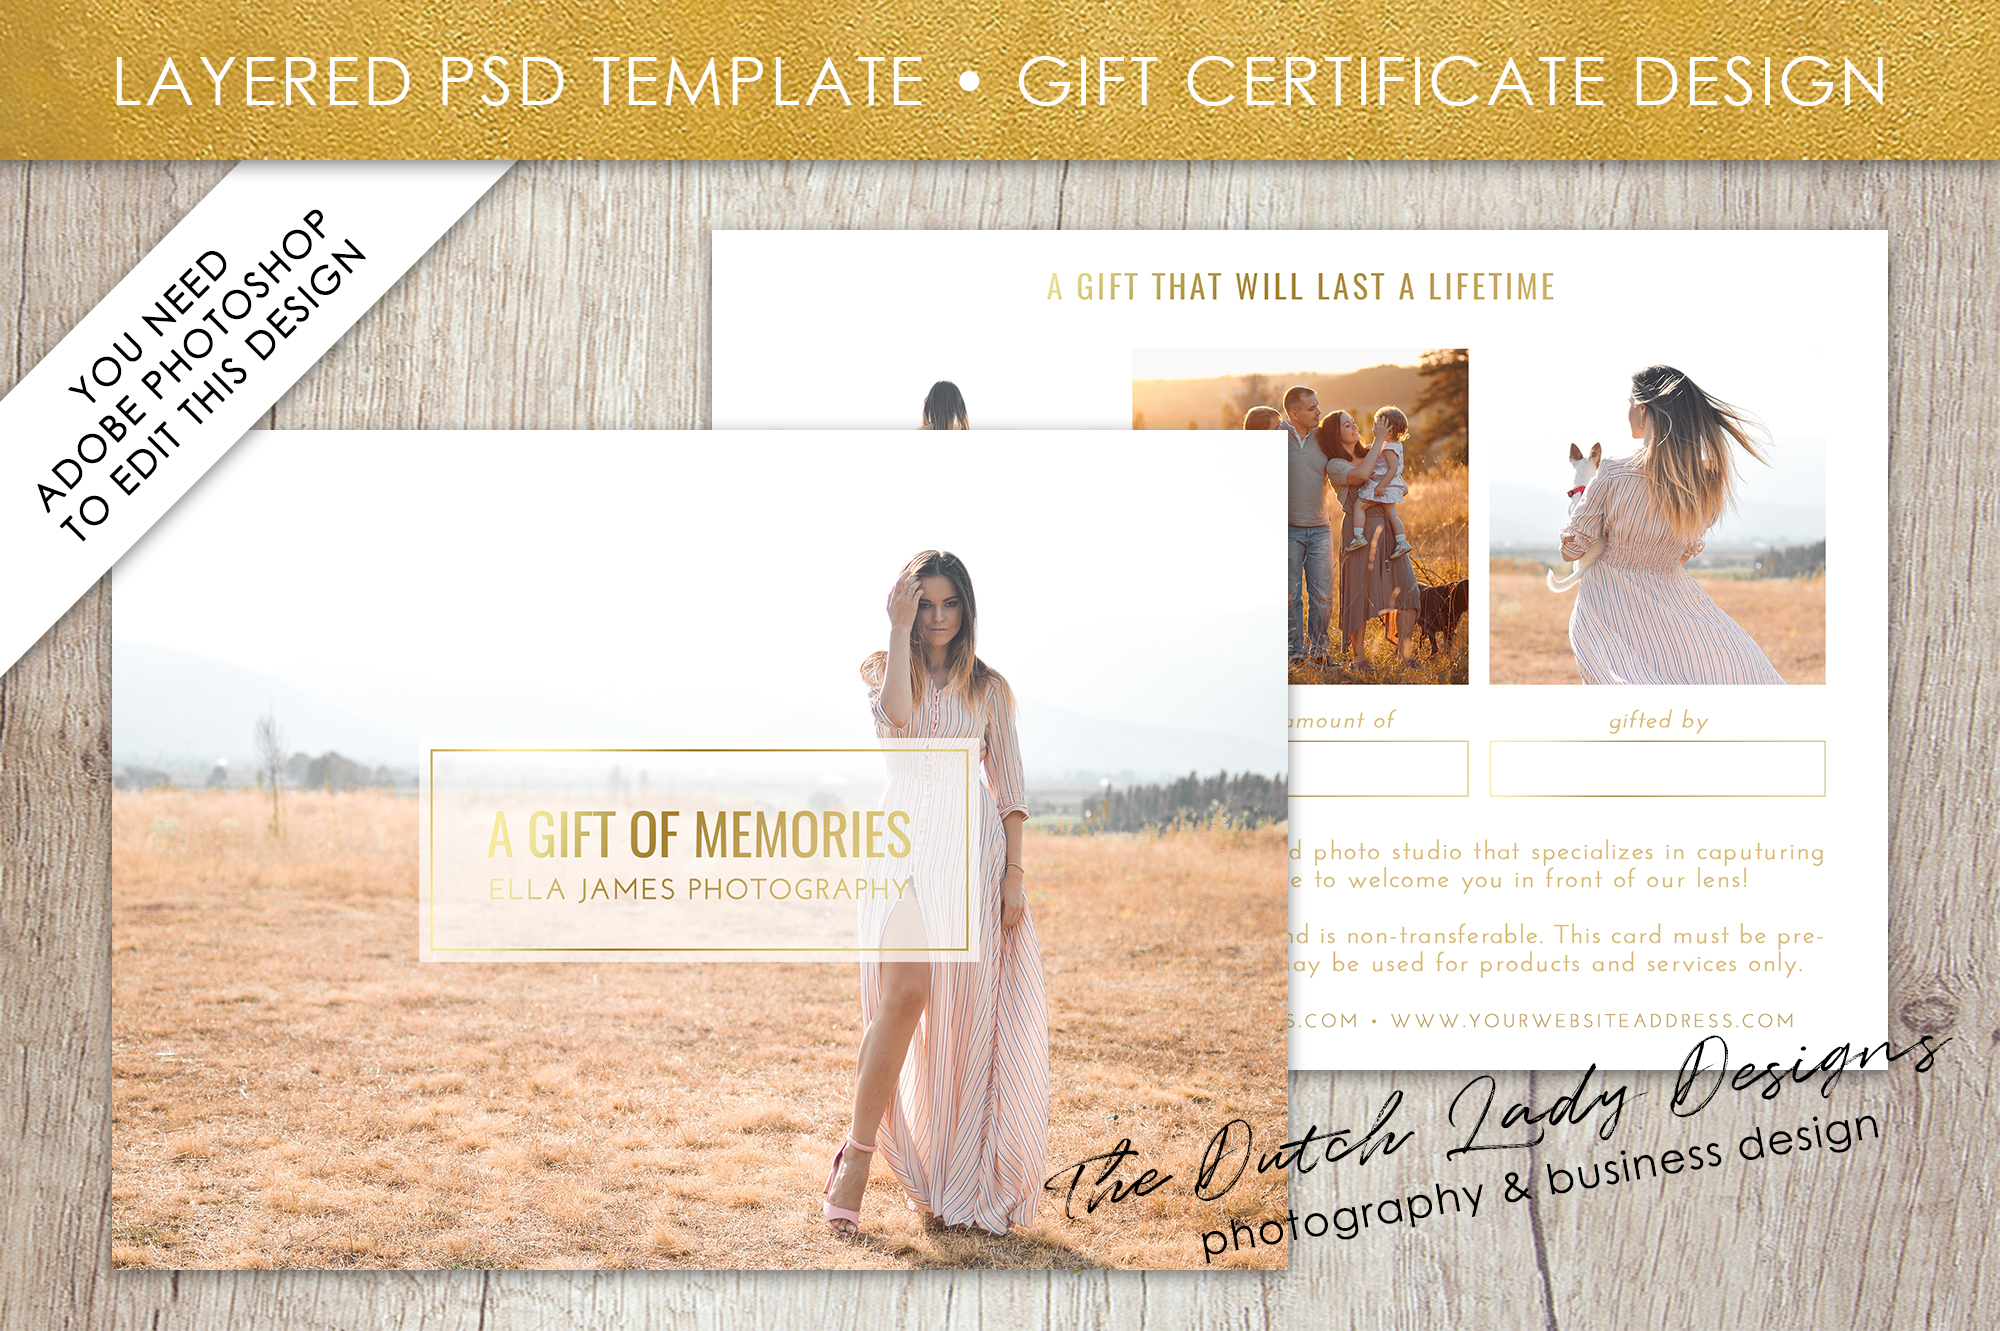 photo gift card template for adobe photoshop layered psd template design 31 example